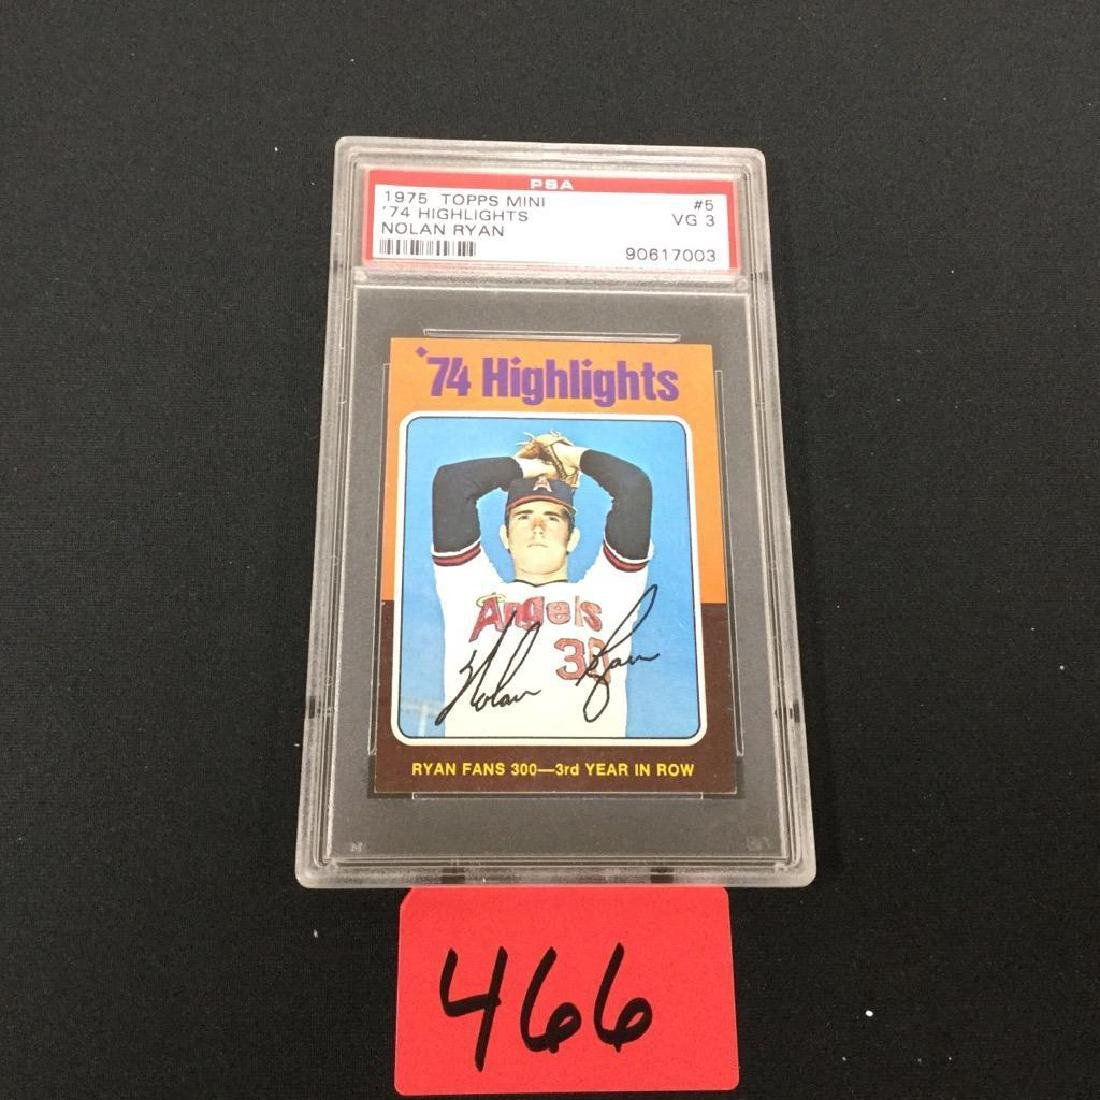 1975 TOPPS MINI '74 Highlights' NOLAN RYAN PSA #5 VG 3